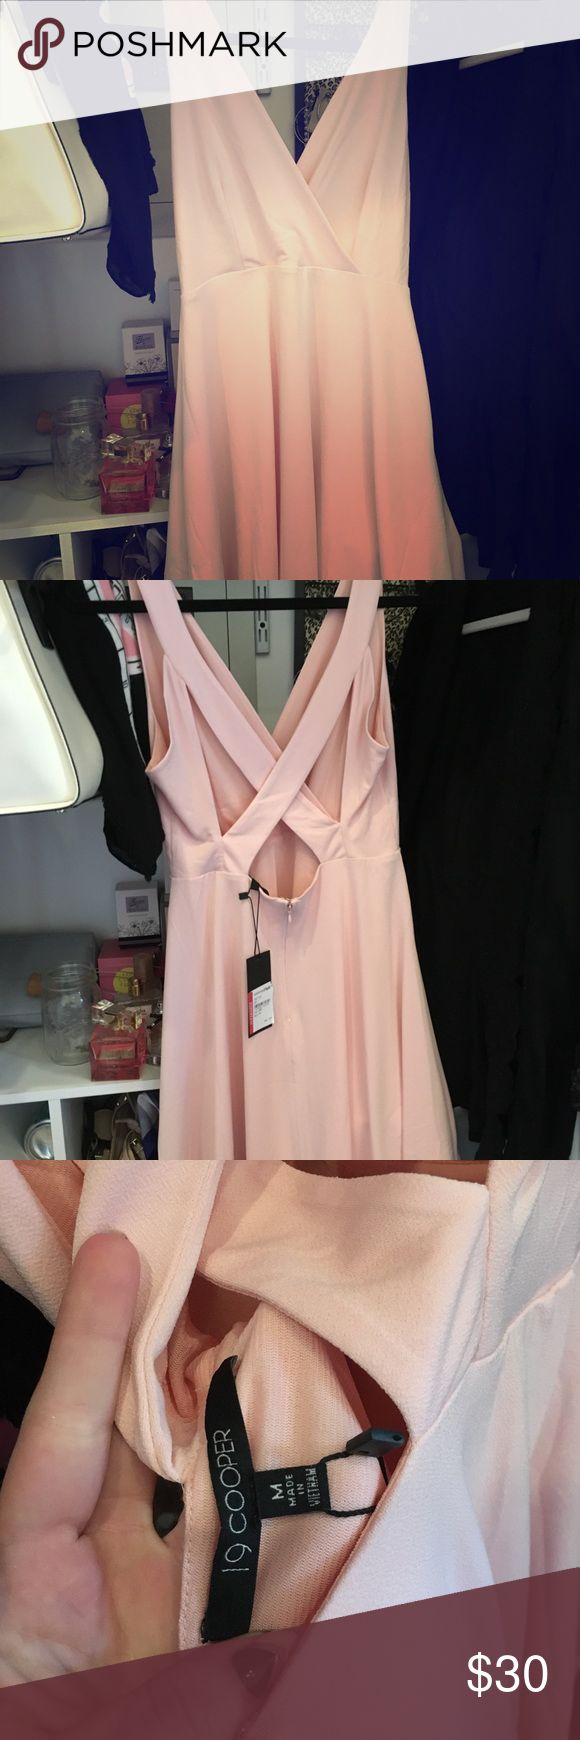 Ballet Pink Mini Dress Pink mini dress, new tags still attached. Waist sits slightly above natural waist, deep v neckline, cross cross back, full skirt, dress is lined. The fabric is super soft and so is the lining, I love it I just have no where to wear it. 95% polyester, 5% spandex. 19 Cooper Dresses Mini